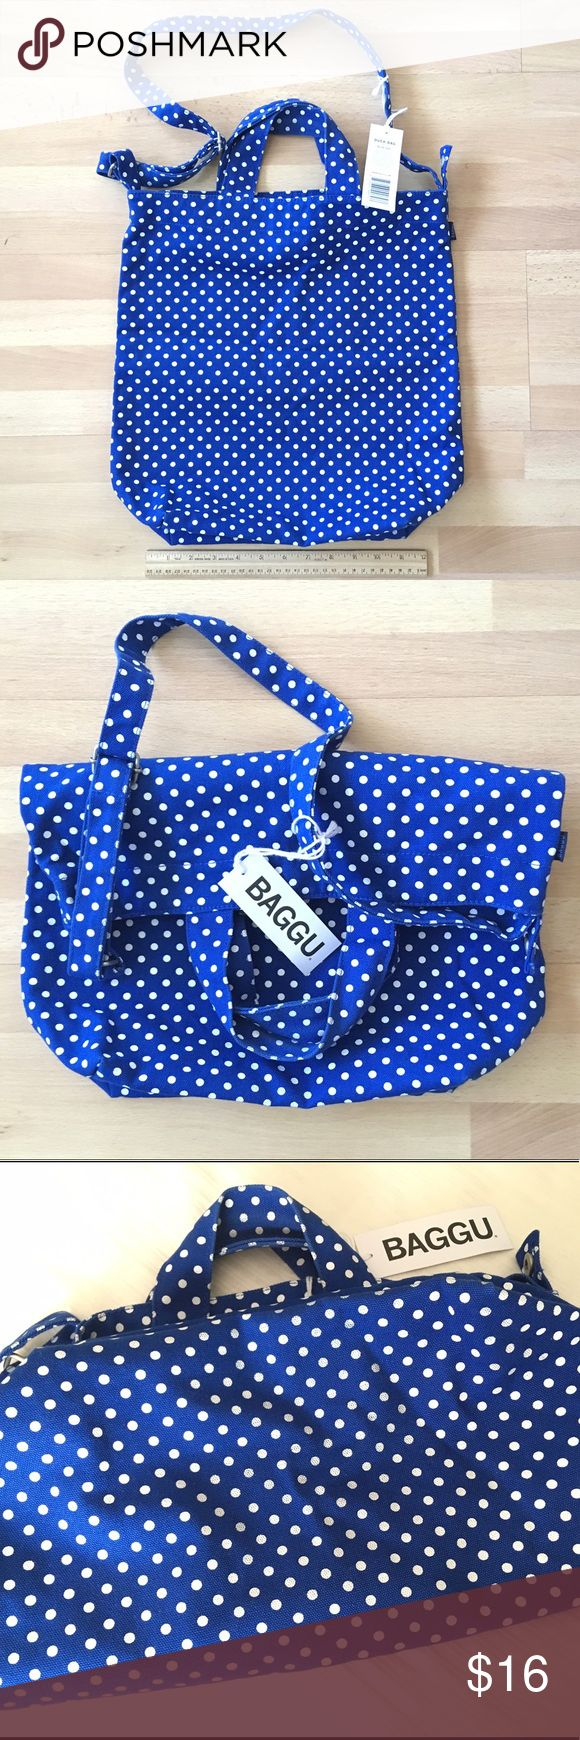 """Baggu The Duck Bag blue white dots canvas tote A perfect everyday tote in durable recycled cotton canvas duck. Two handles and 40"""" adjustable strap, to carry in hand or over shoulder. 16"""" x 10"""" x 5.5"""". Matte silver hardware. Durable taped seams. Snap inner pocket. 100% 16 oz. recycled cotton canvas. 100% Authentic! Condition: Very good, just minor wear on dots from jeans otherwise, looks fab! Plenty of life left in this handy durable tote. Smoke free, pet free home. Retail $30. Check out my…"""